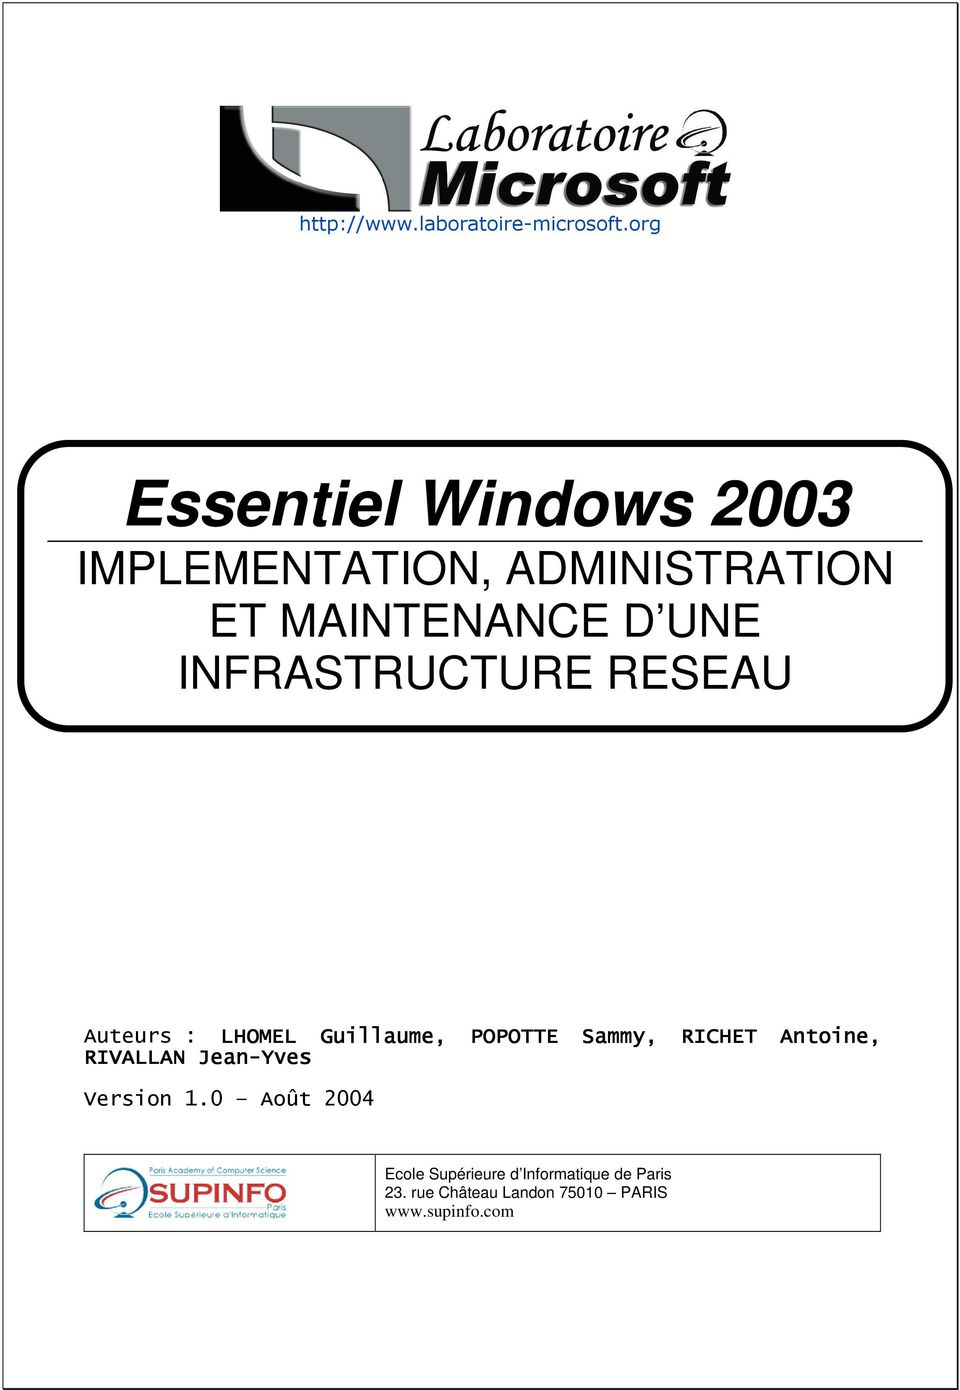 WINDOWS 2003!